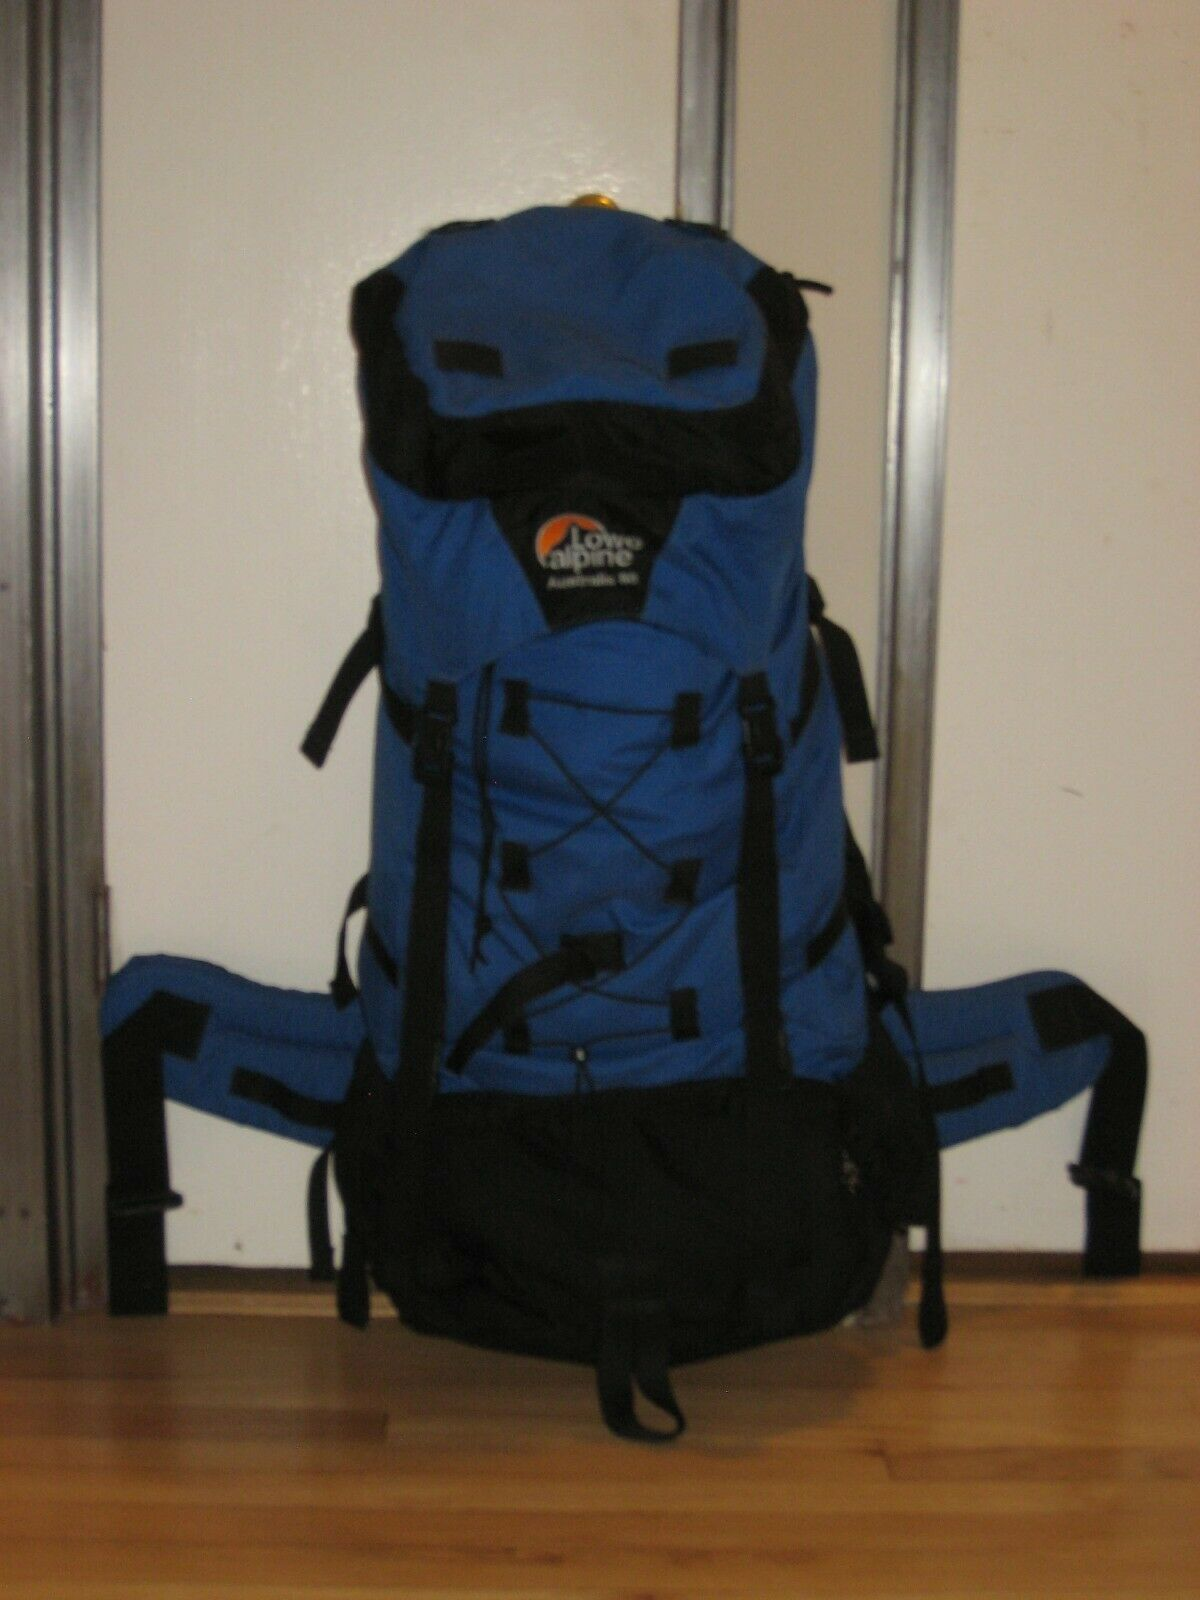 LOWE ALPINE Australis 80 Expedition Backpack (Internal Frame)